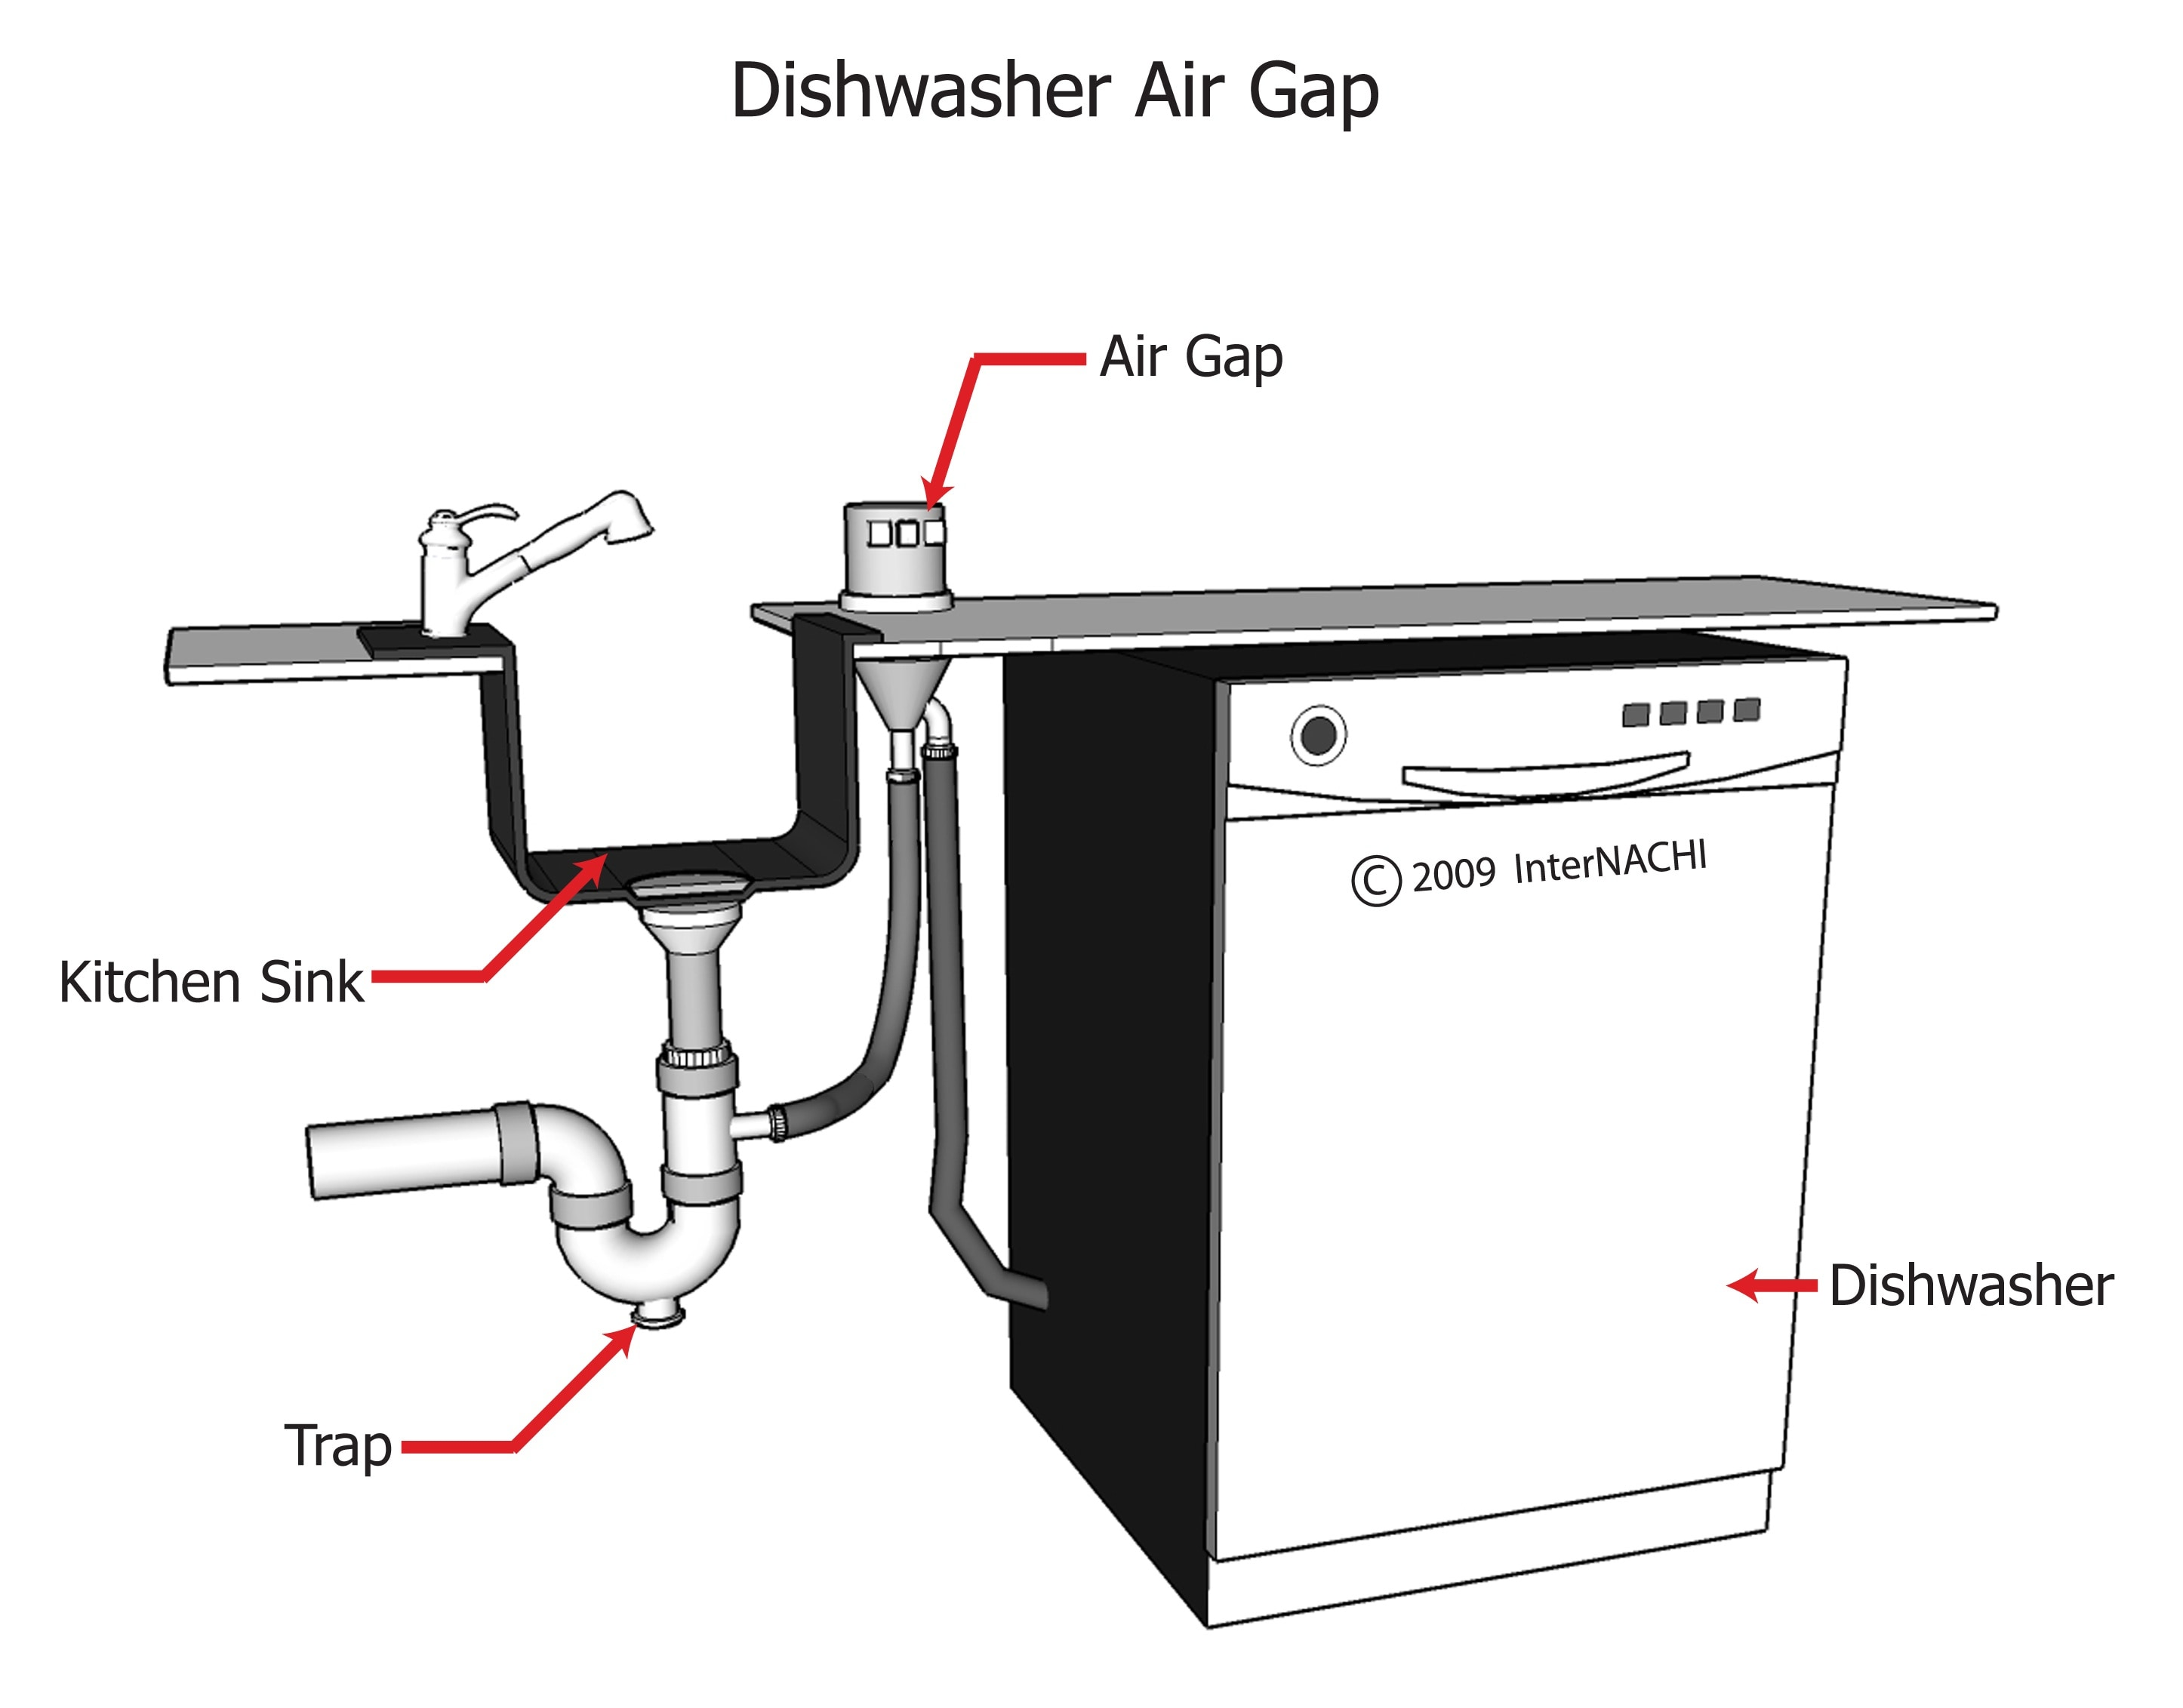 Dishwasher Air Gap Inspection Gallery Internachi